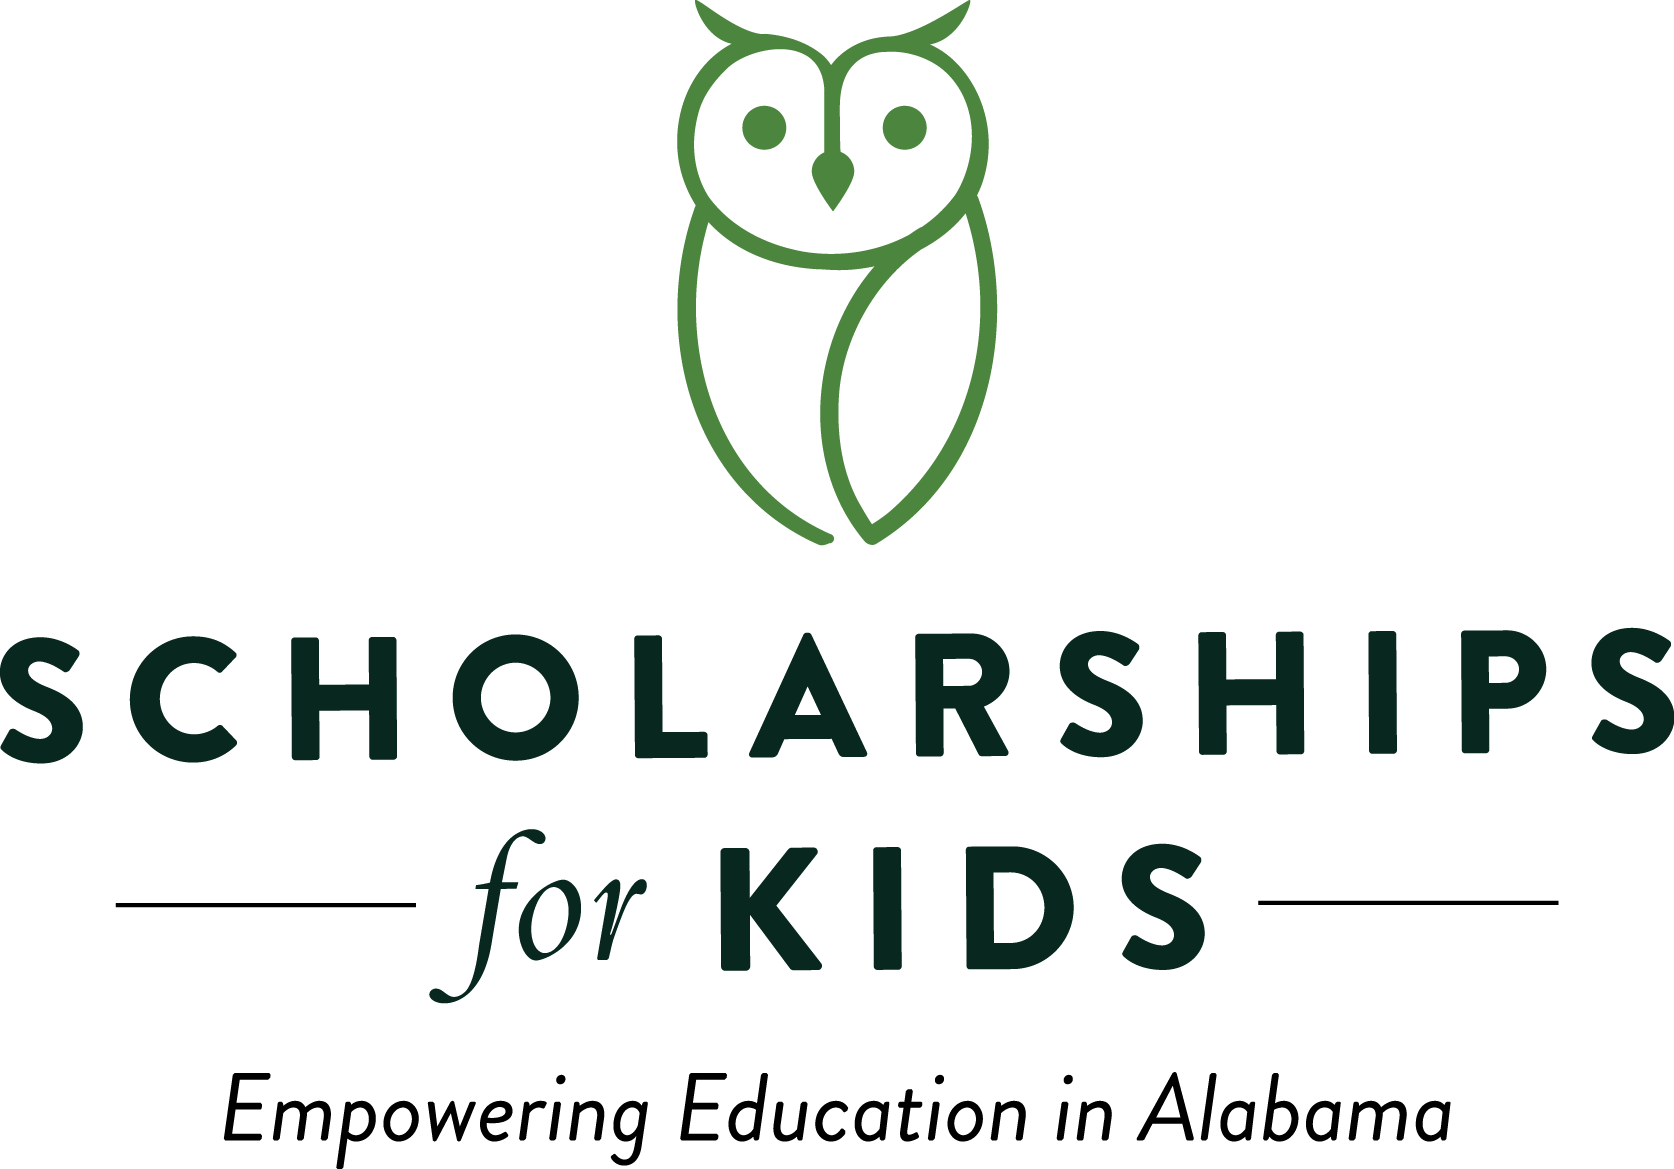 SCHOLARSHIPS for KIDS